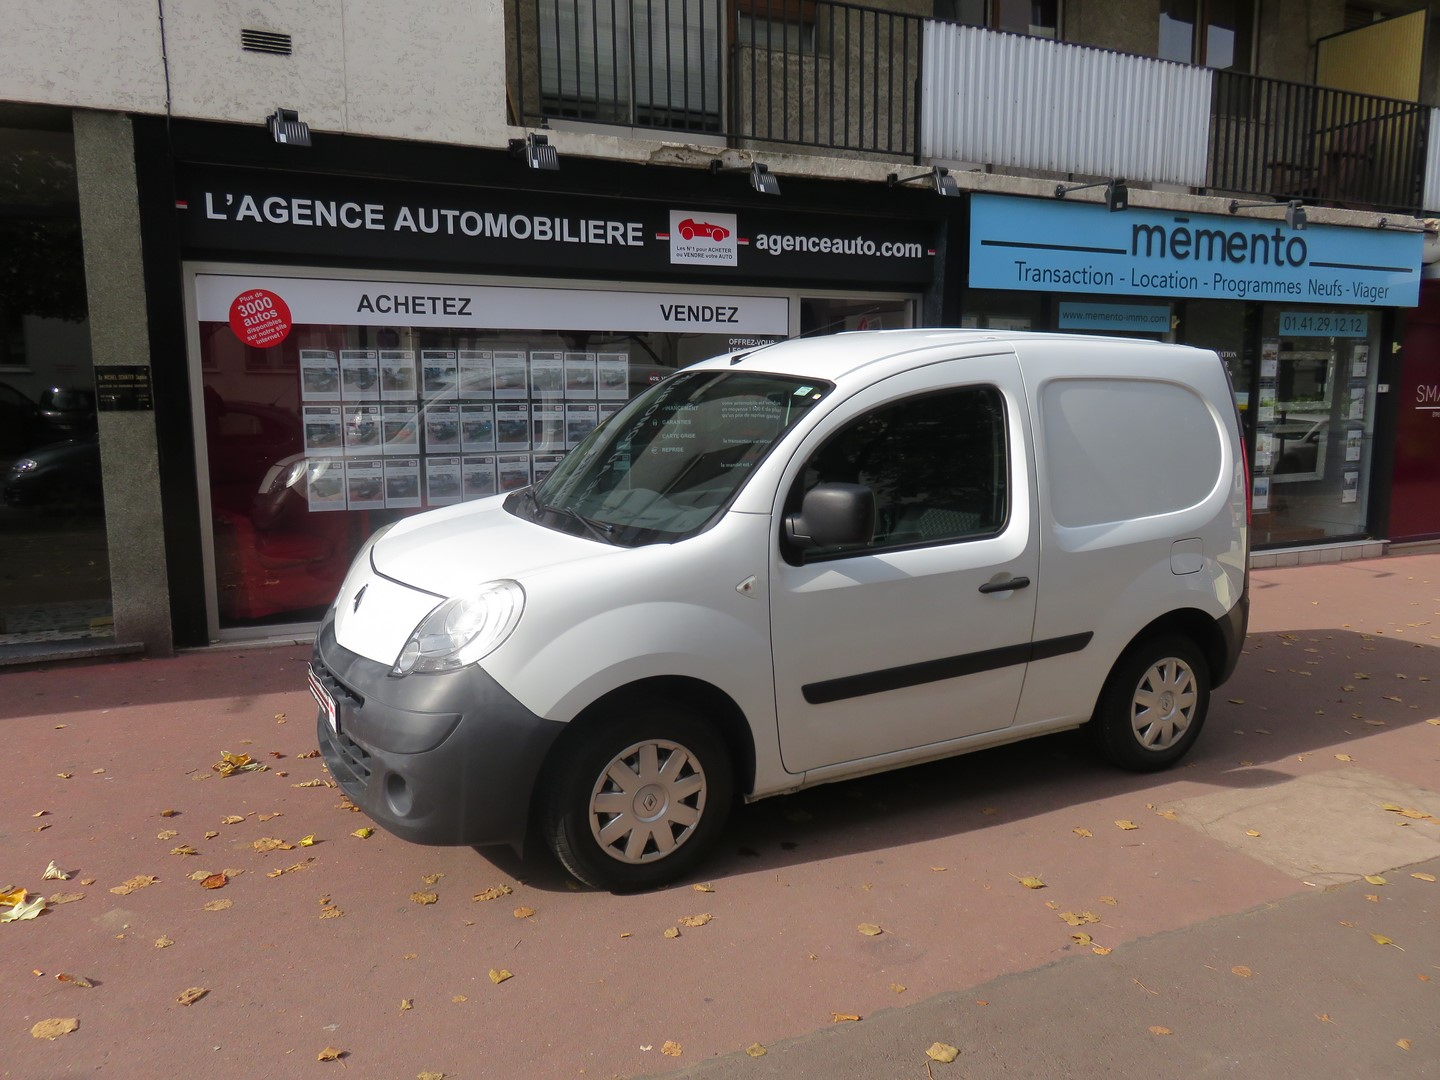 renault kangoo ii express compact vu 1 5 dci l0 70 cv occasion rueil malmaison pas cher. Black Bedroom Furniture Sets. Home Design Ideas